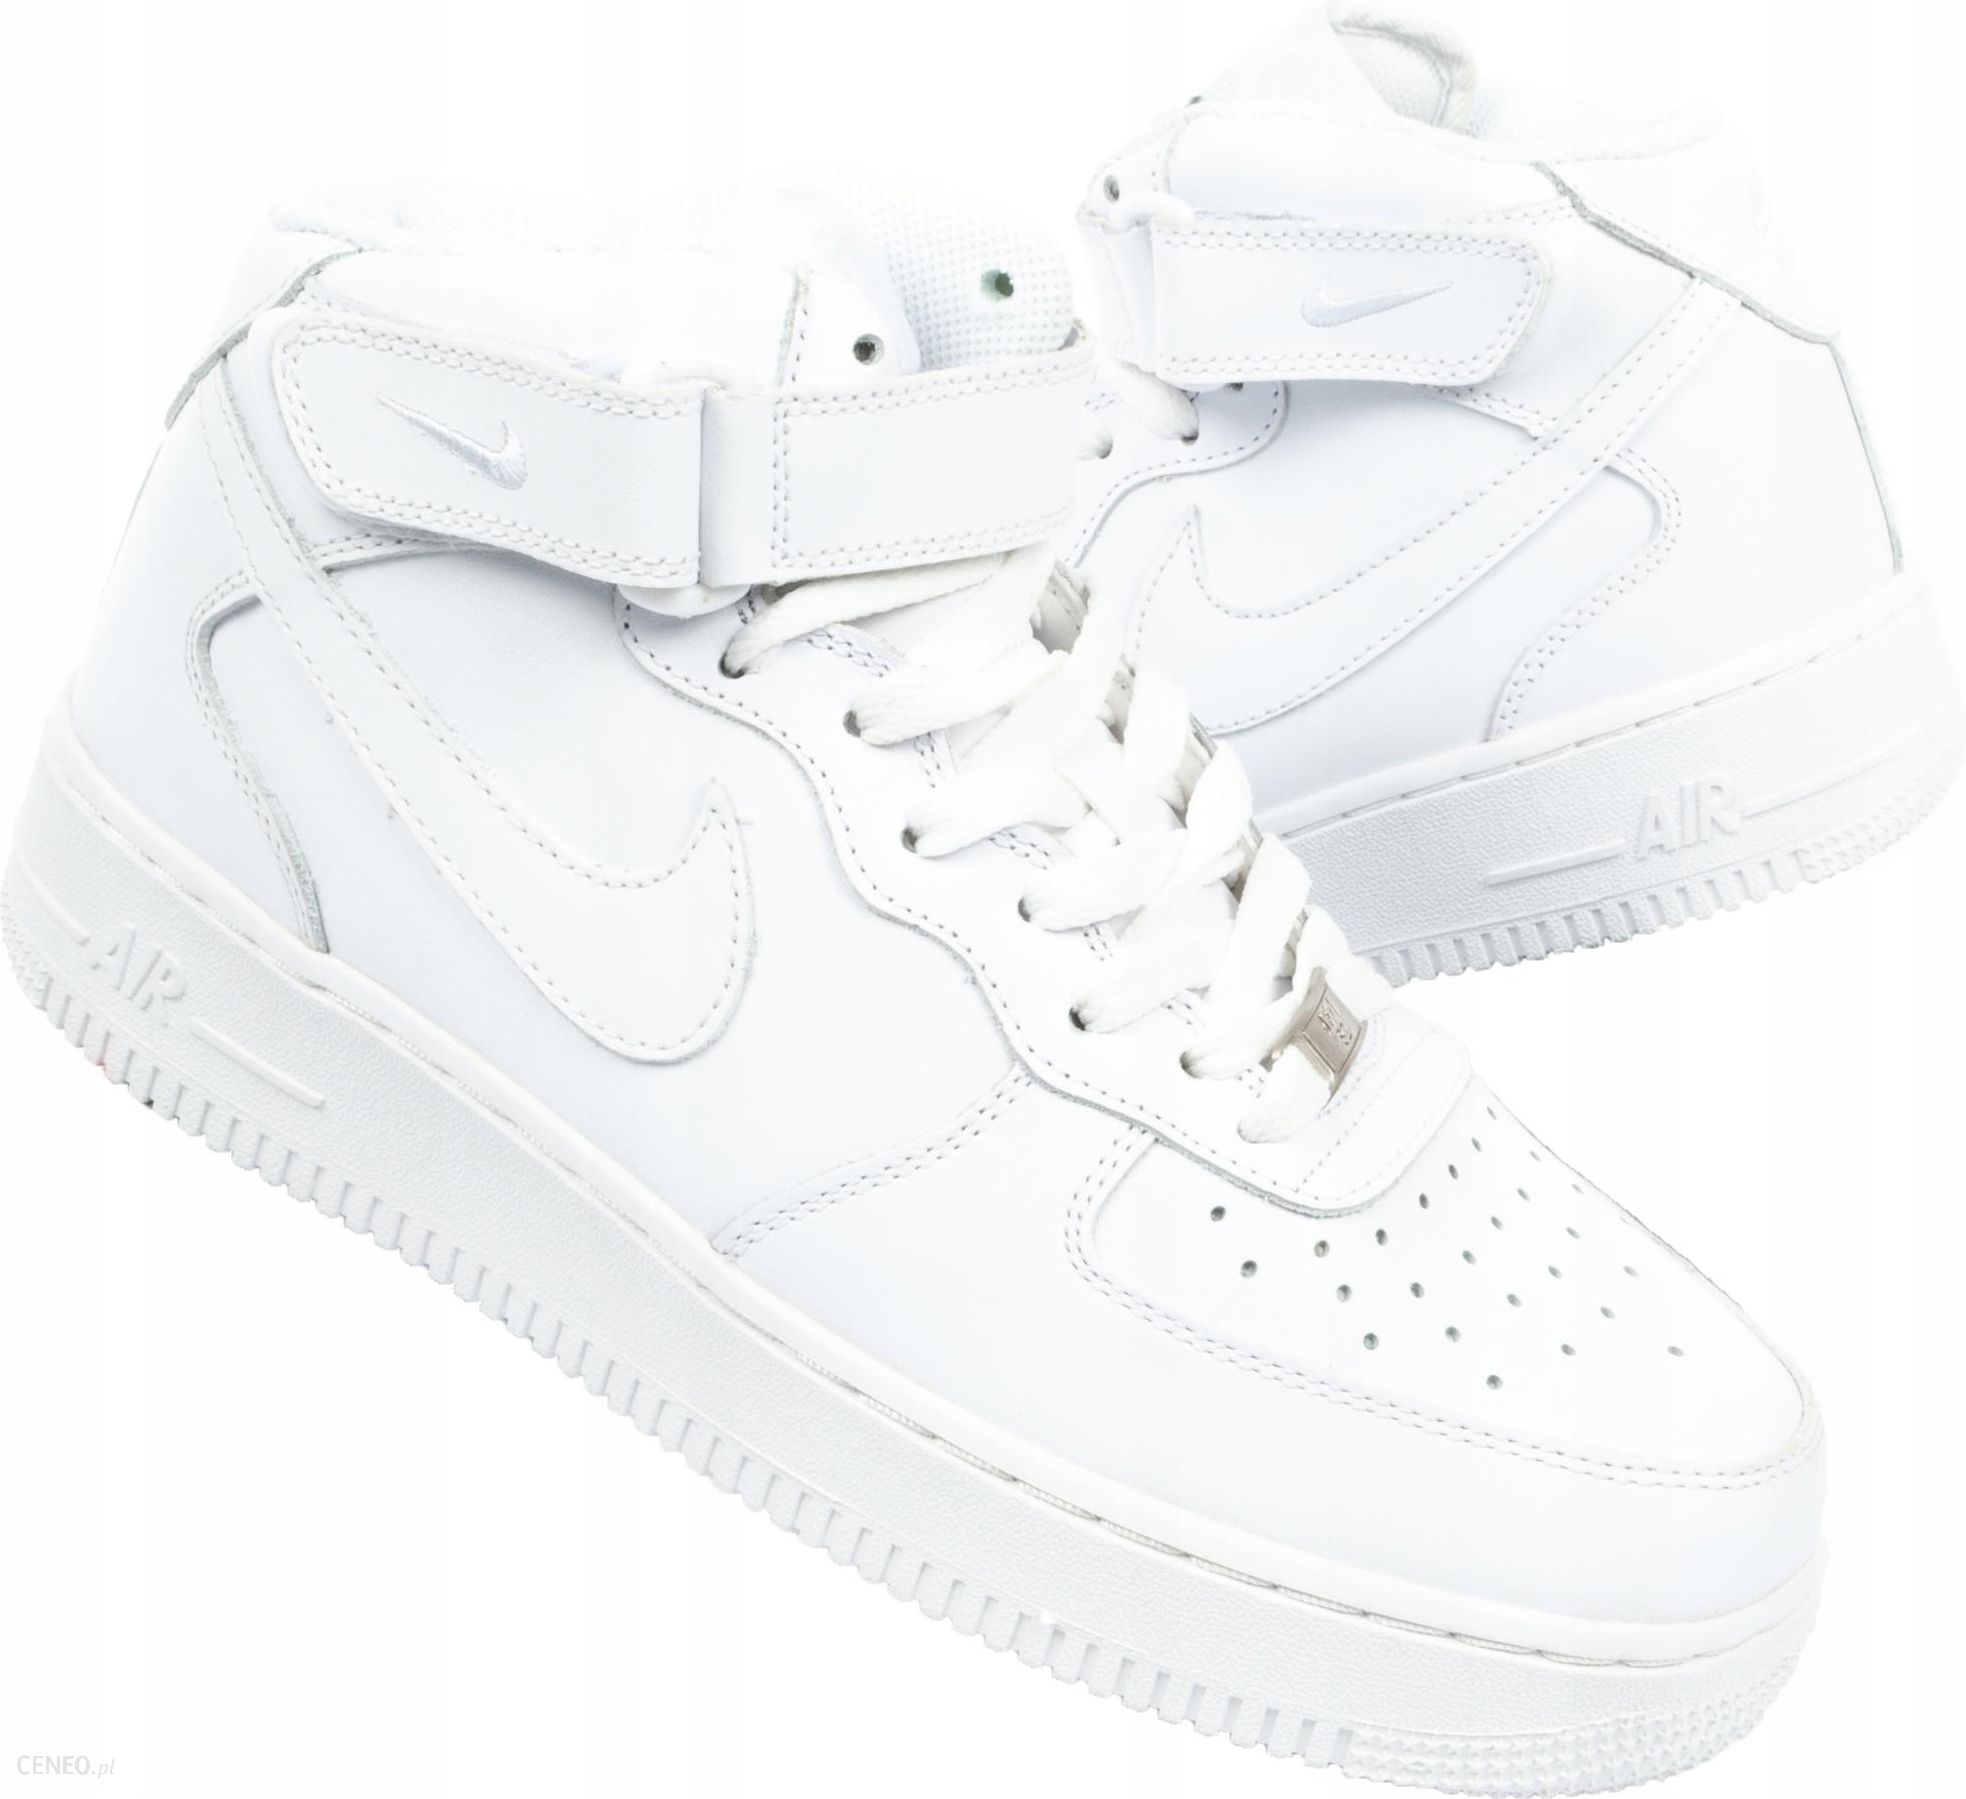 Buty NIKE AIR FORCE 1 MID 07 HIGH BIAŁE r 43